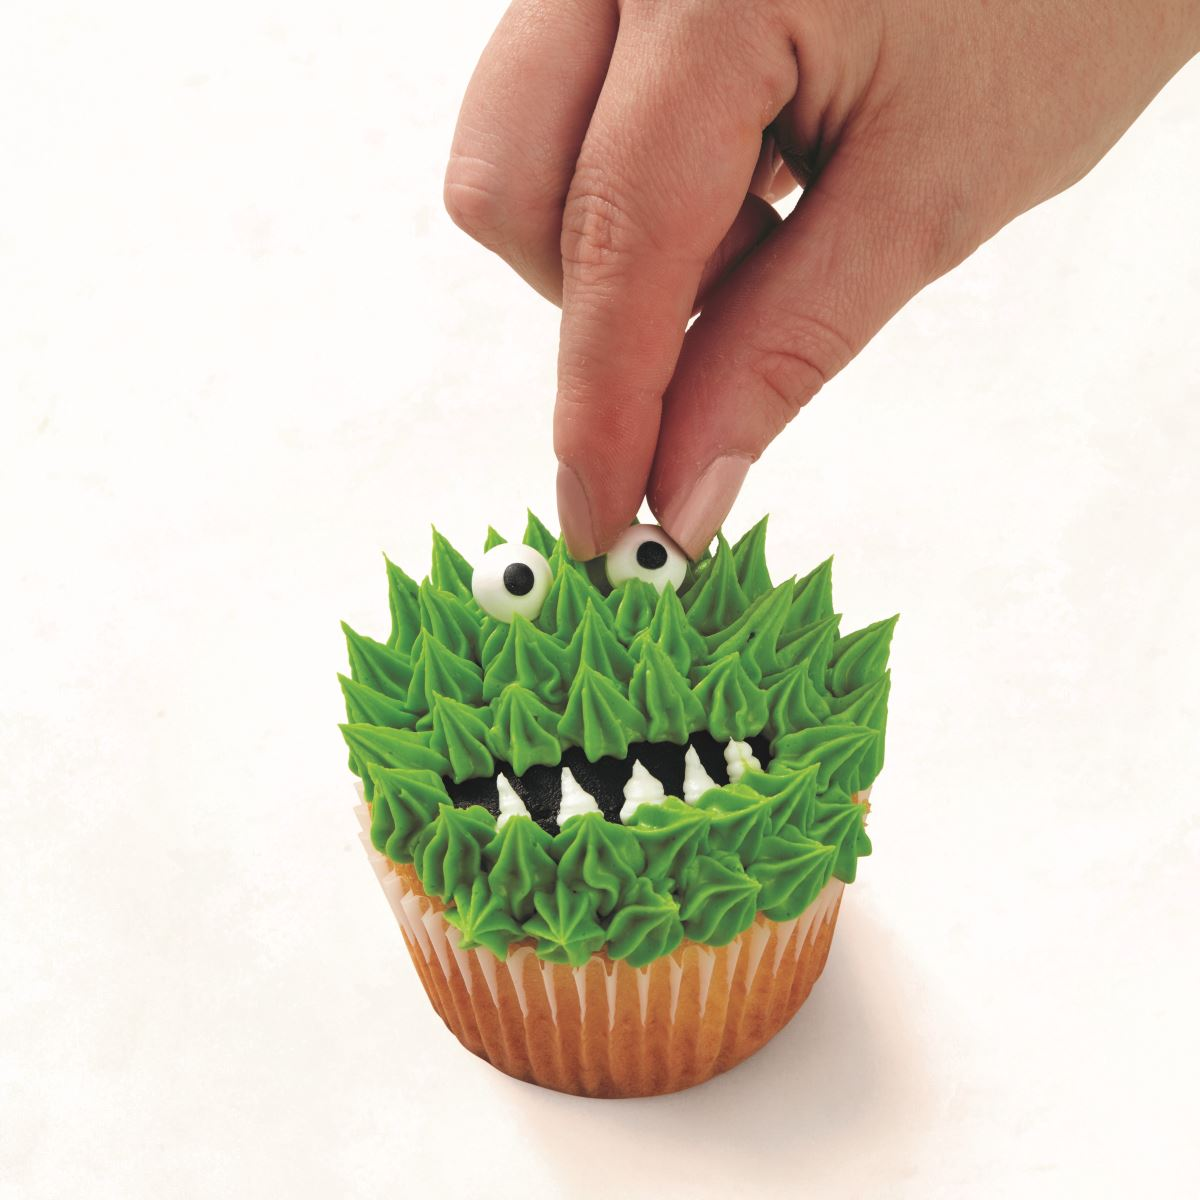 GREEN MONSTER CUPCAKE step 4